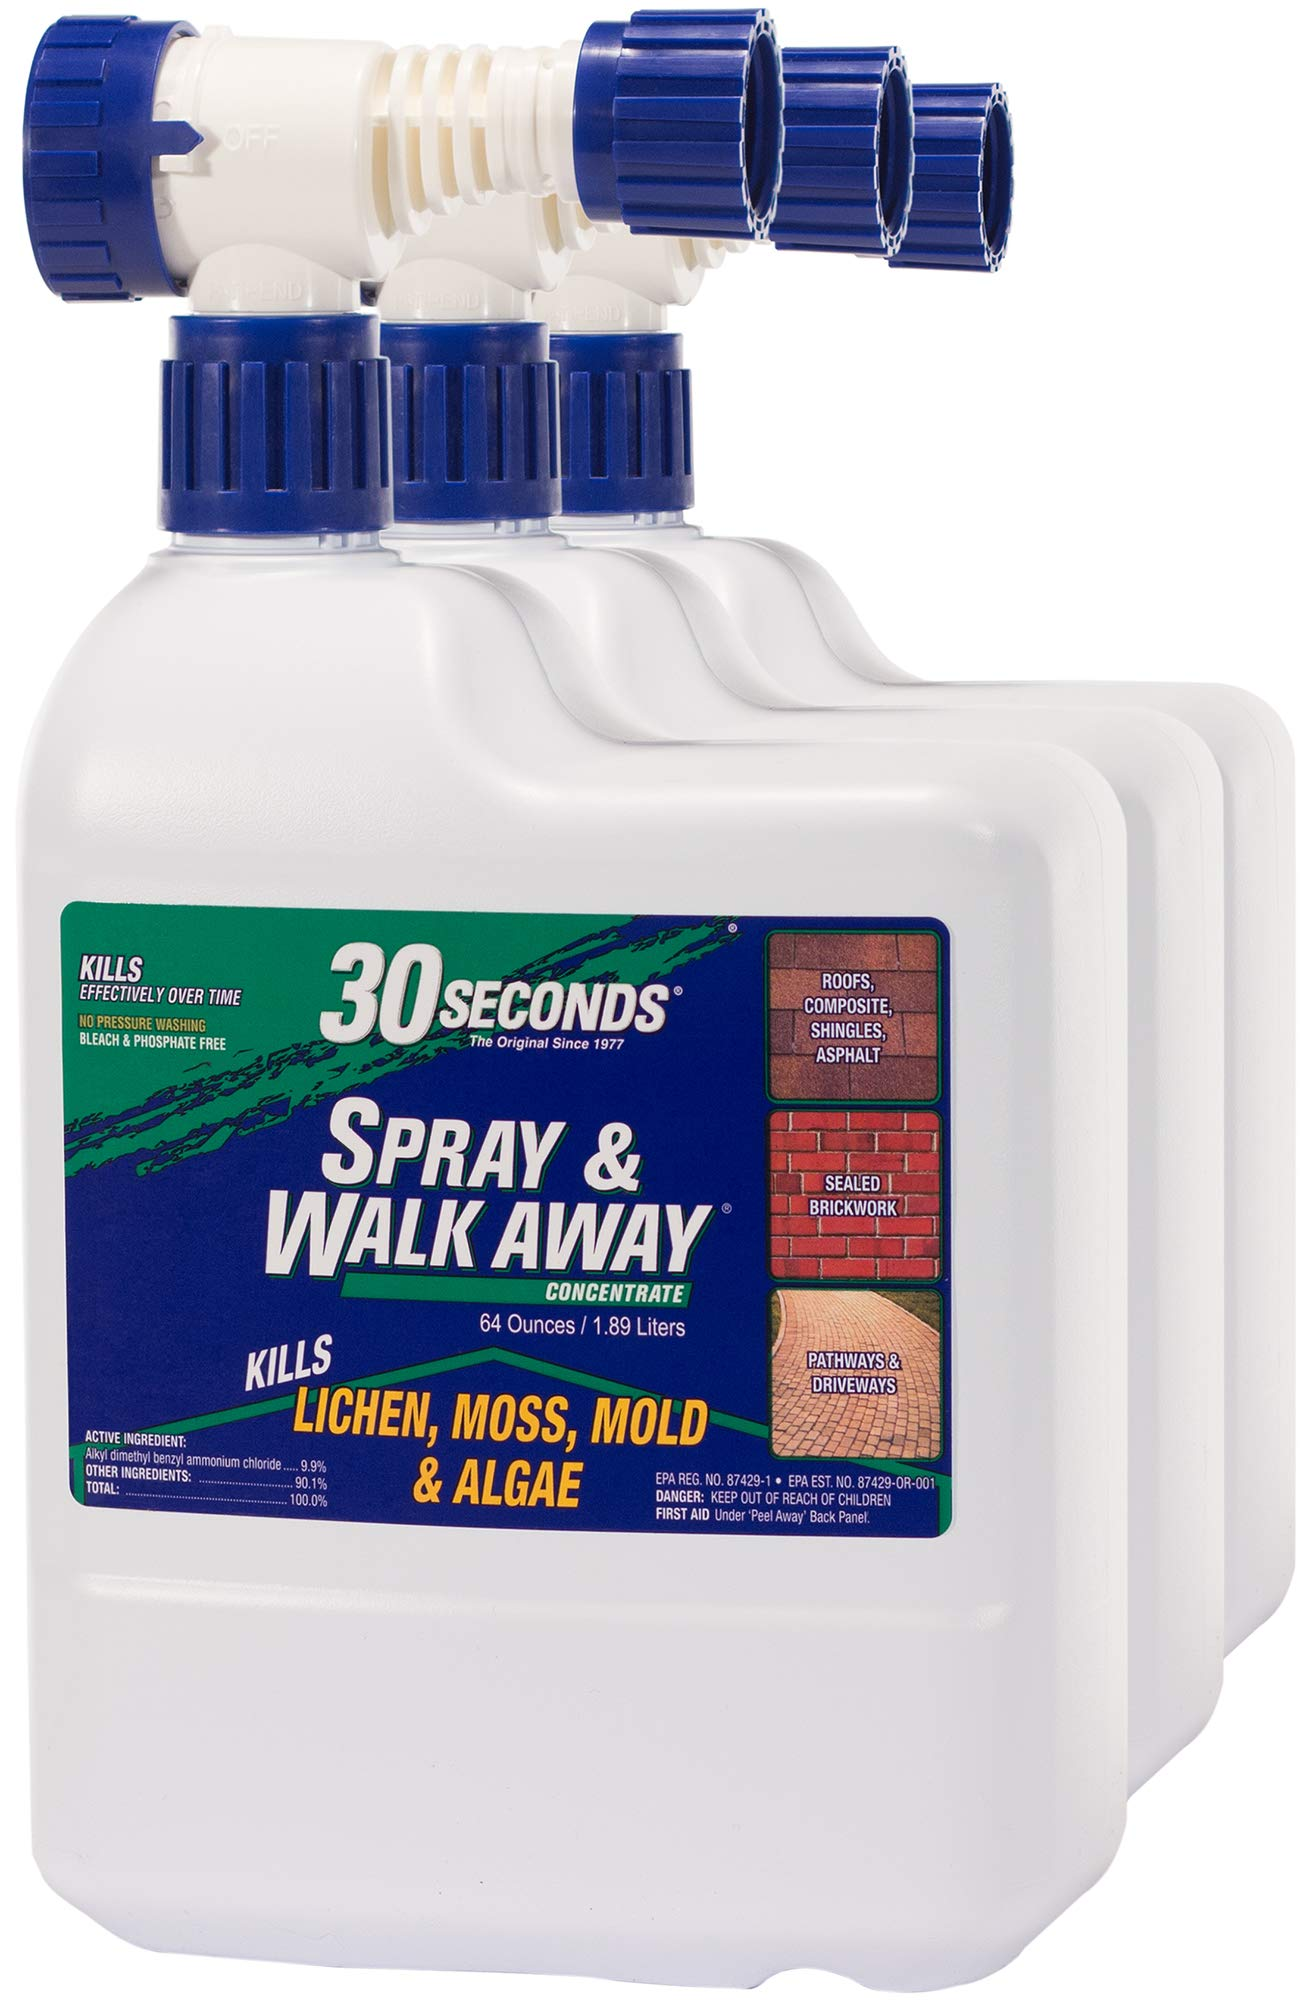 0 SECONDS Cleaners 64SAWA 3PA Spray & Walk Away Cleaner, 64 oz with Hose End Sprayer (Pack of 3)